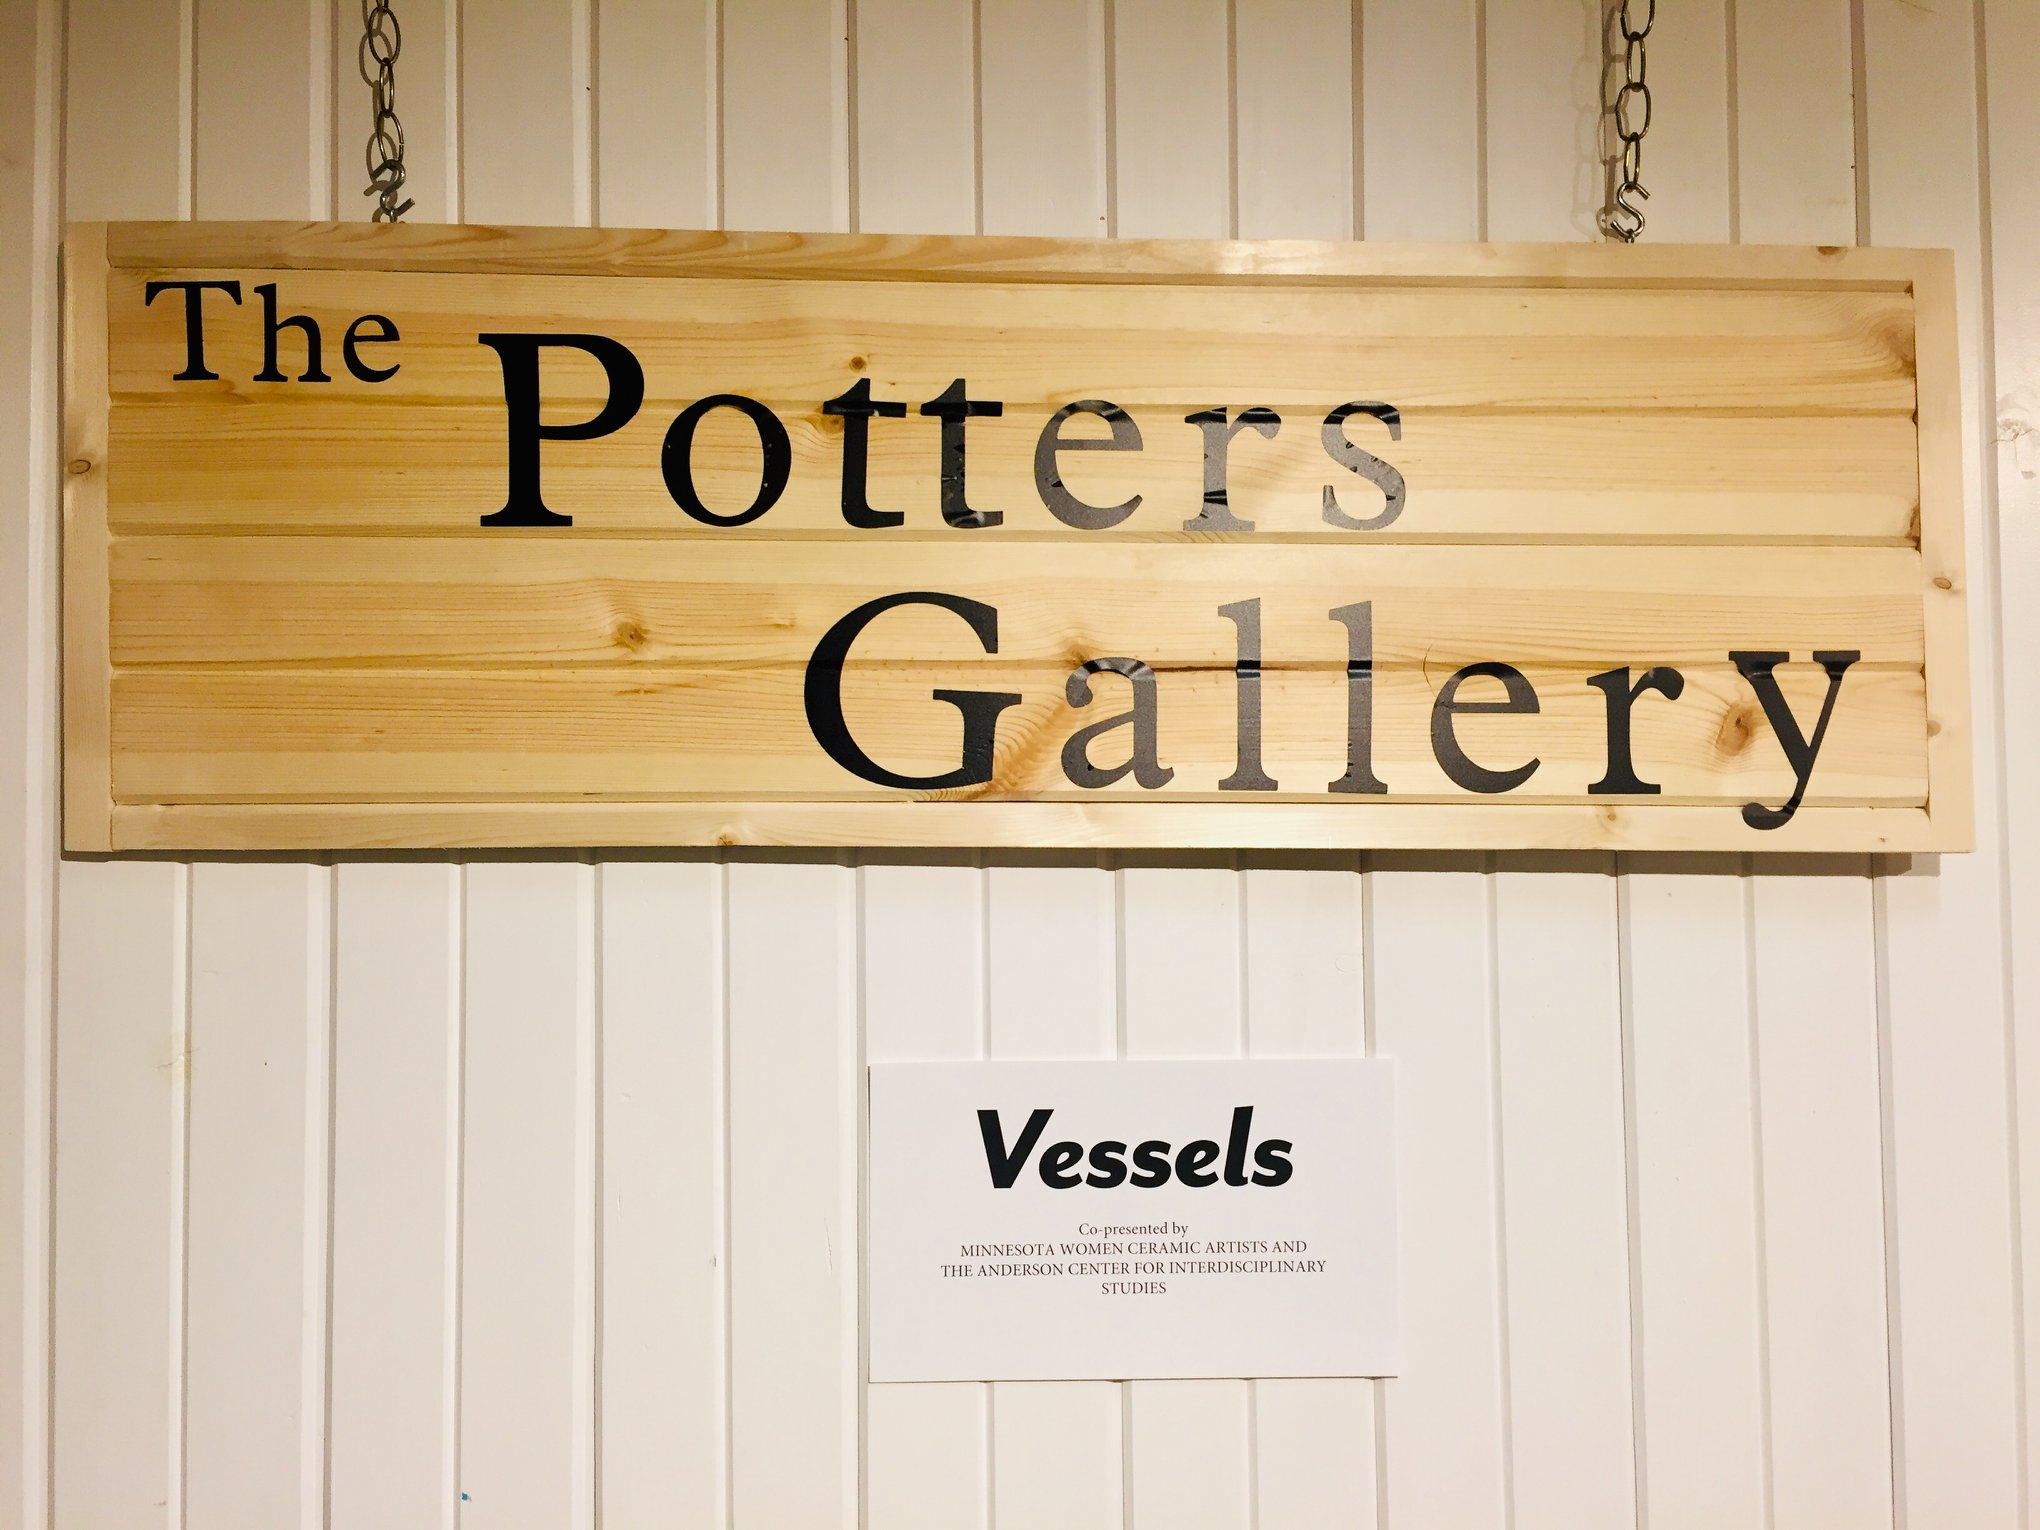 The Potters Gallery entrance sign